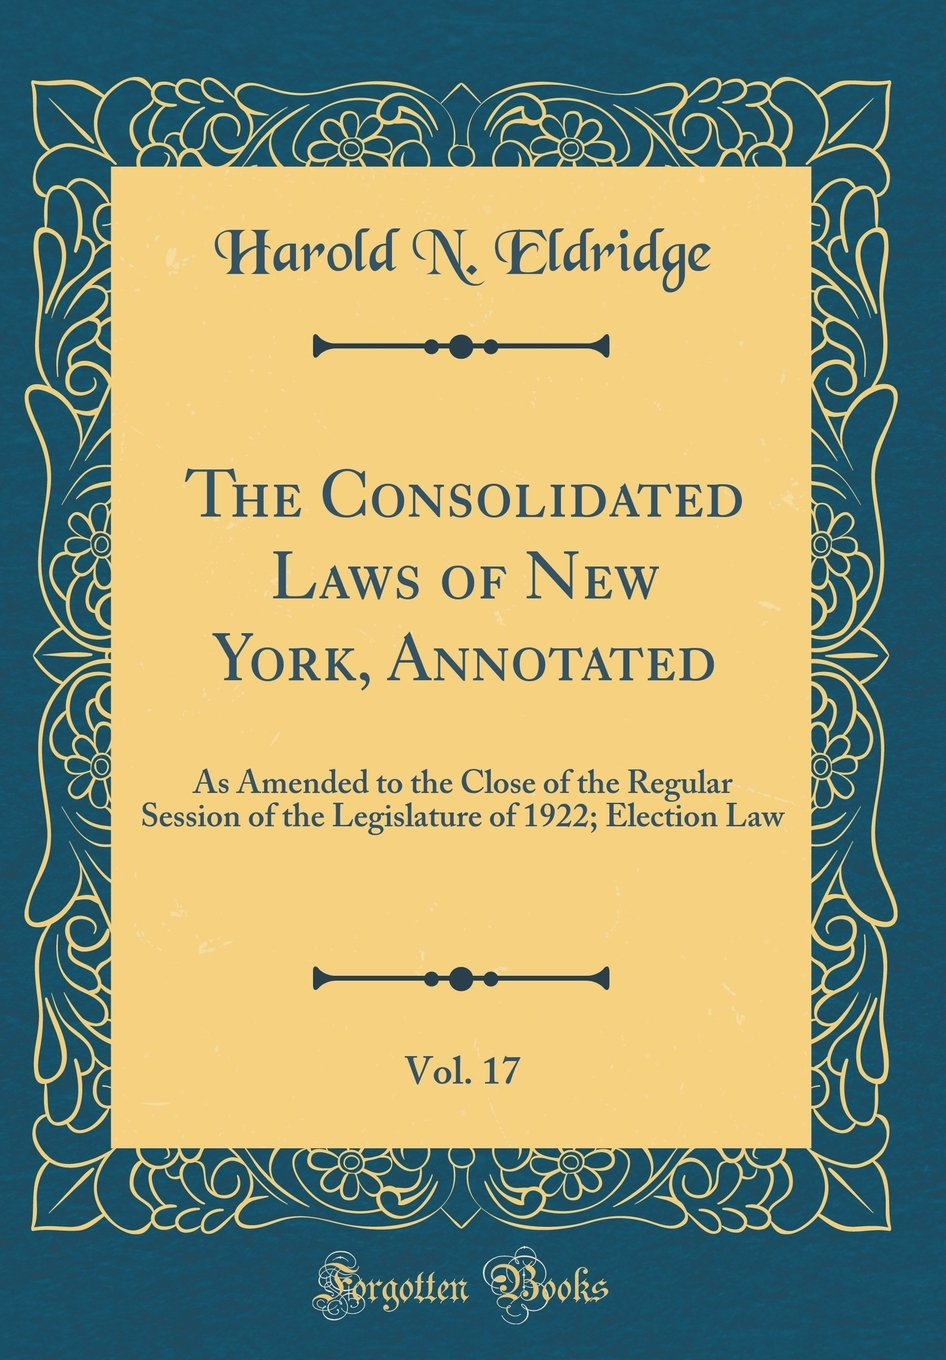 The Consolidated Laws of New York, Annotated, Vol. 17: As Amended to the Close of the Regular Session of the Legislature of 1922; Election Law (Classic Reprint) PDF Text fb2 ebook